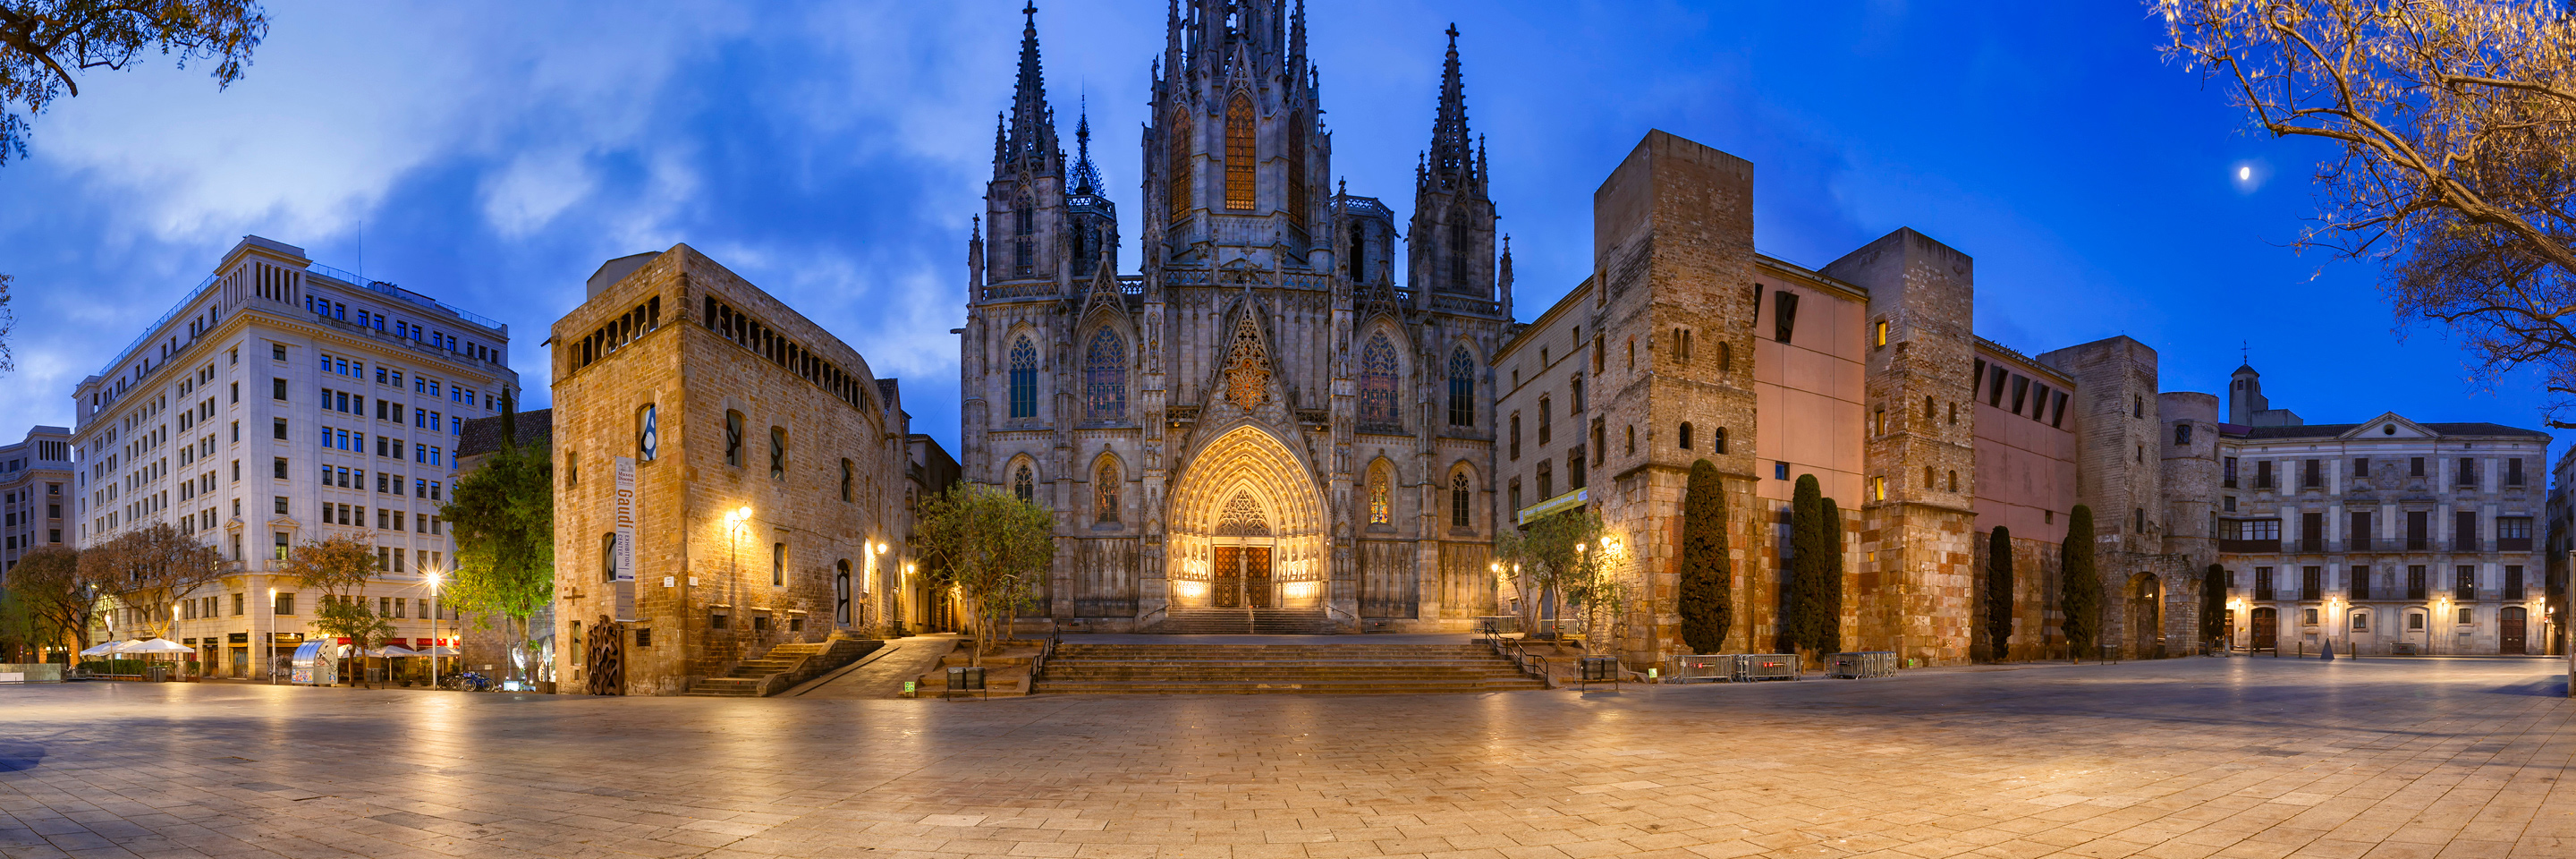 Burgundy & Provence with 2  Nights in Paris, 2 Nights in Nice & 3 Nights in Barcelona for Wine Lovers  (Southbound)